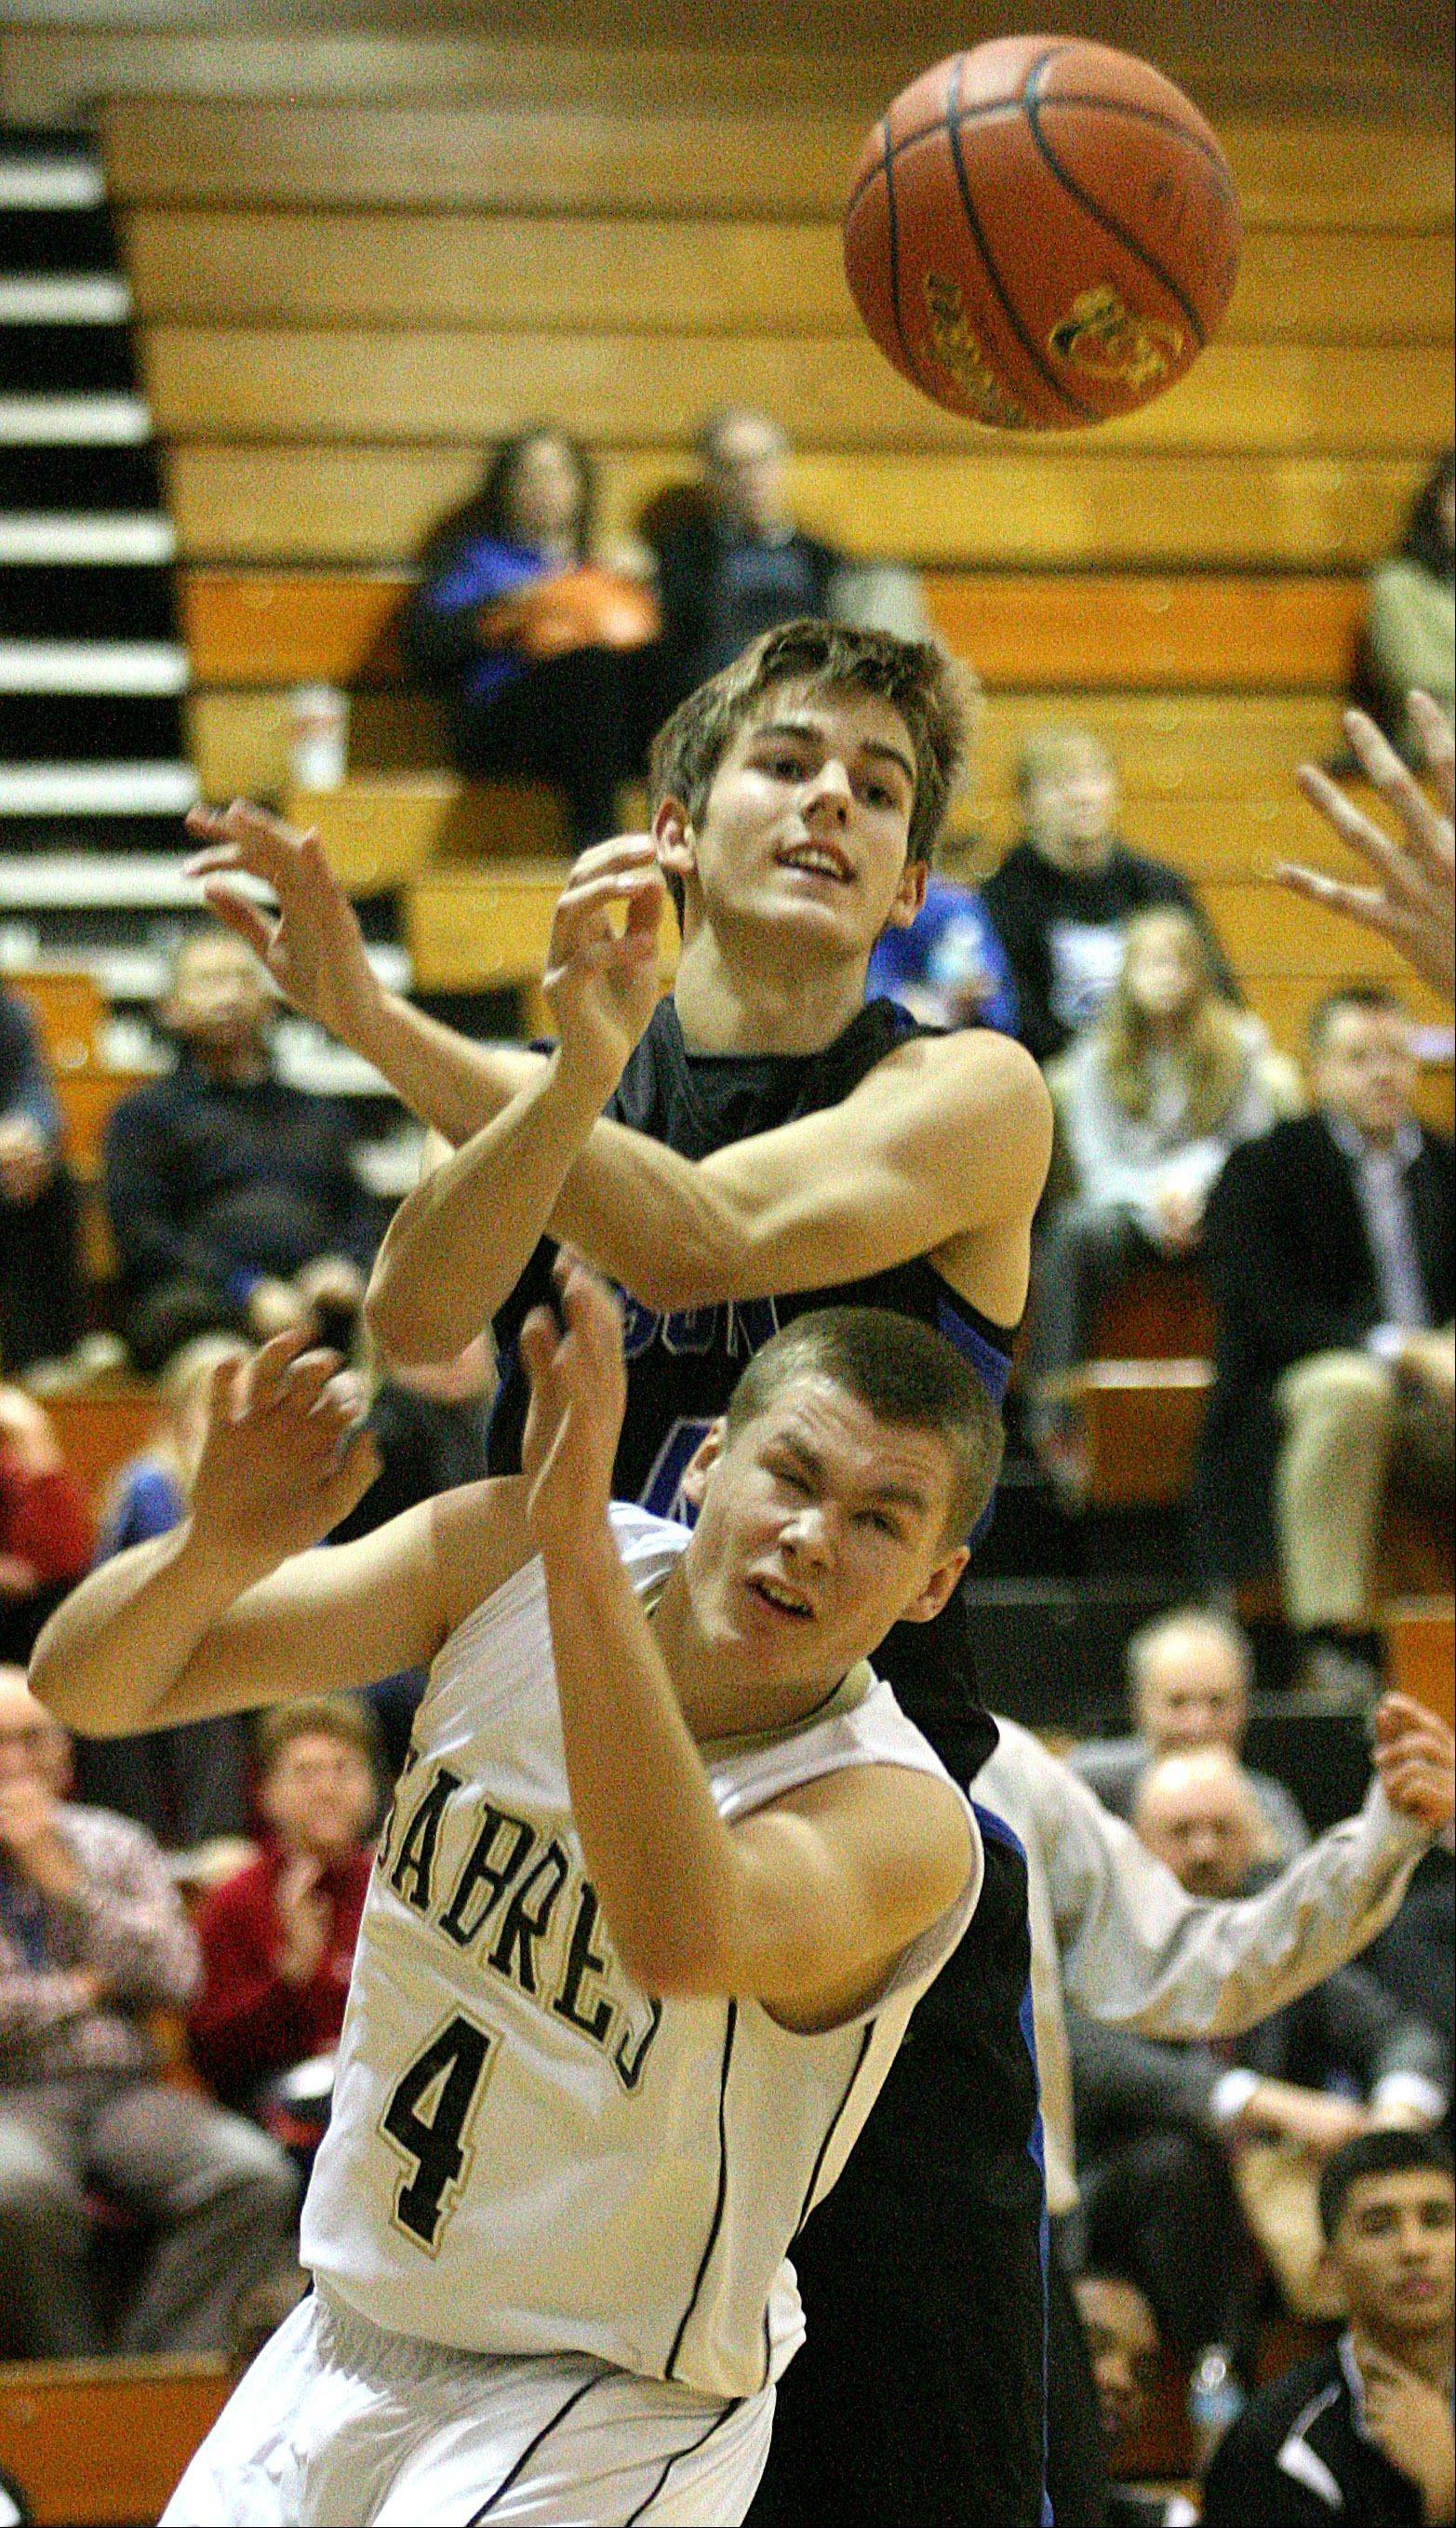 Streamwood's Jacob Siewert, bottom, and St Charles North's Jake Ludwig look for the ball during a varsity basketball game at Streamwood on Thursday night.